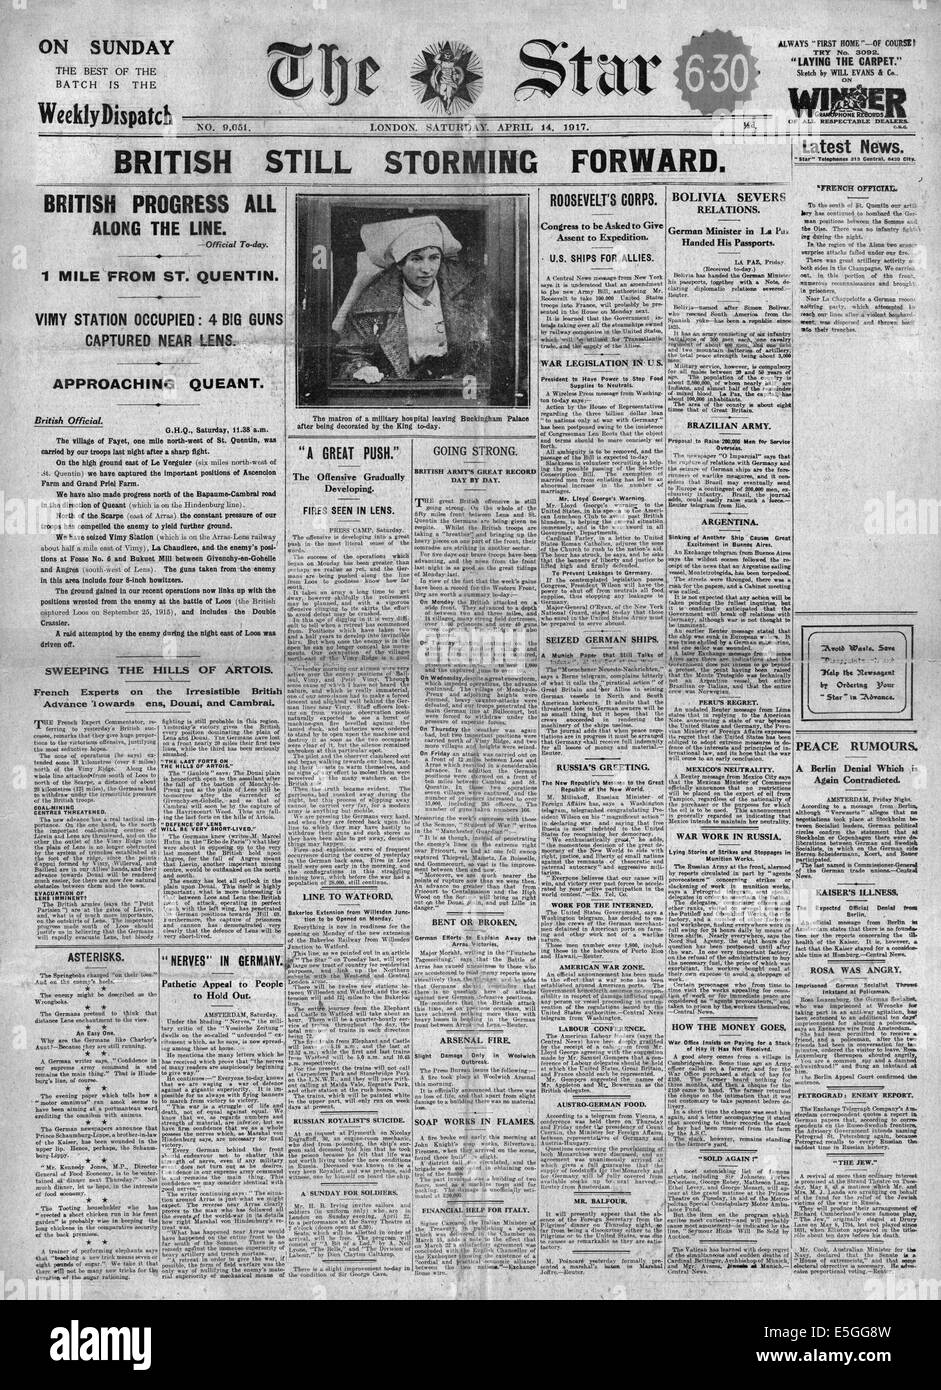 1917 The Star (London) front page reporting British advance along the Western Front - Stock Image